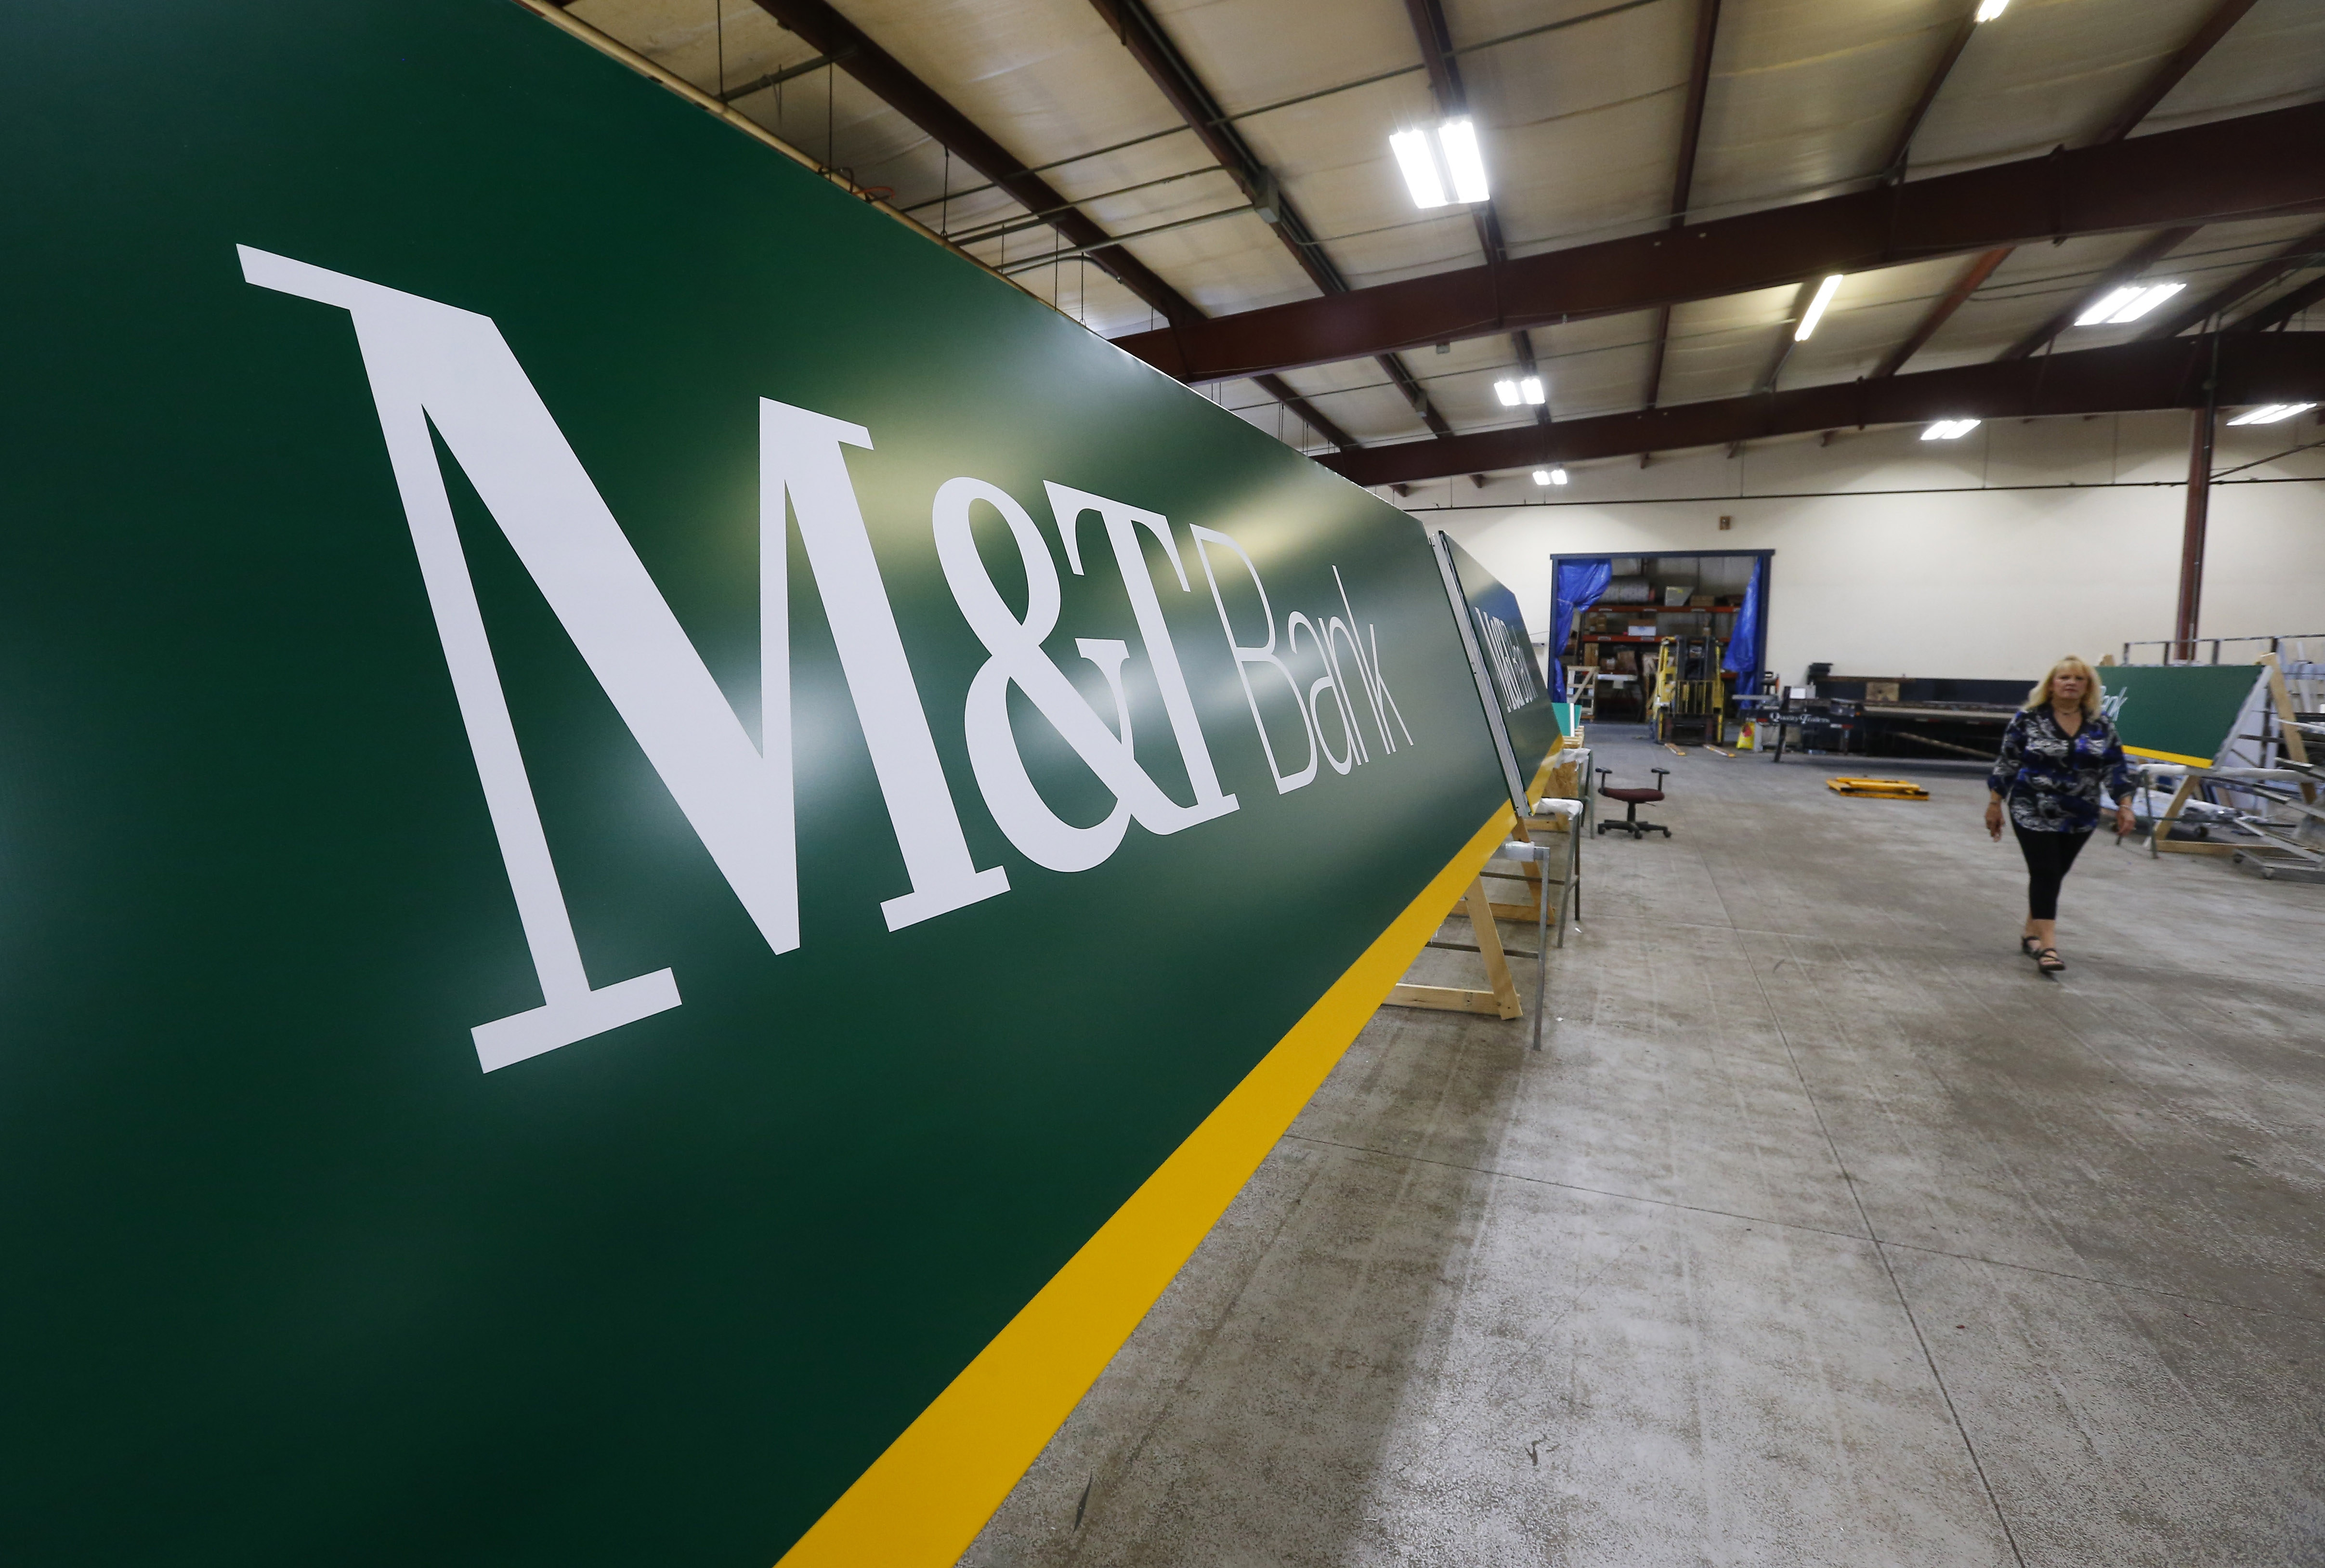 Premier Sign Systems is making new signage that will be used at M&T Bank branches outside of Western New York. Premier is manufacturing the signs in its Rochester workshop, shown here on Aug. 3.